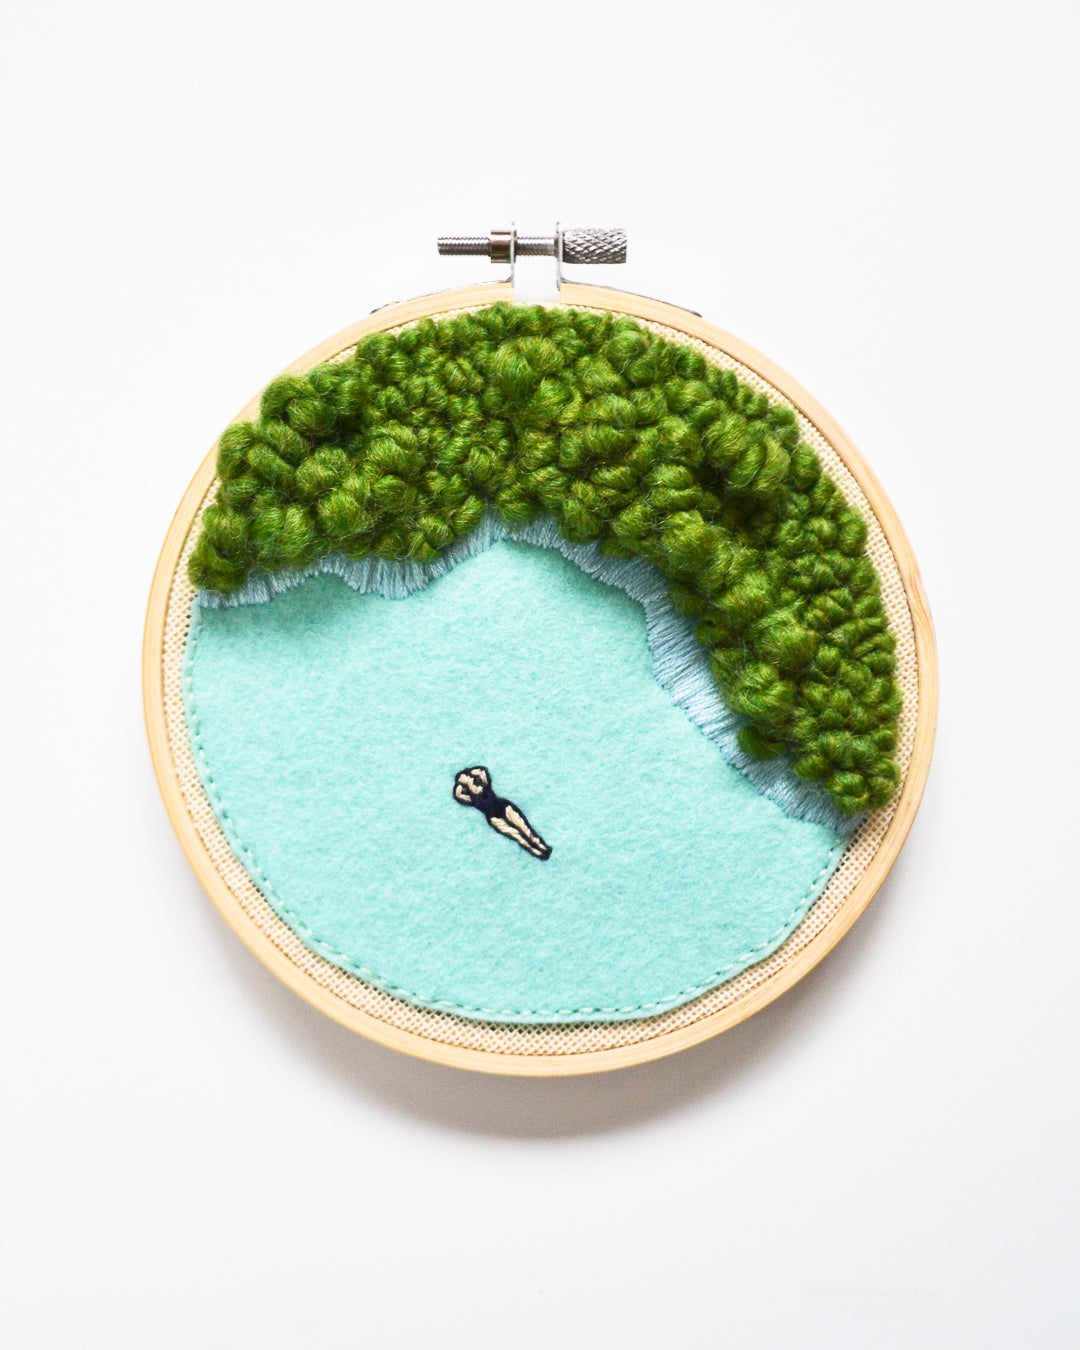 Mini Lagoon No. 8 Original Art - 5 in. hoop